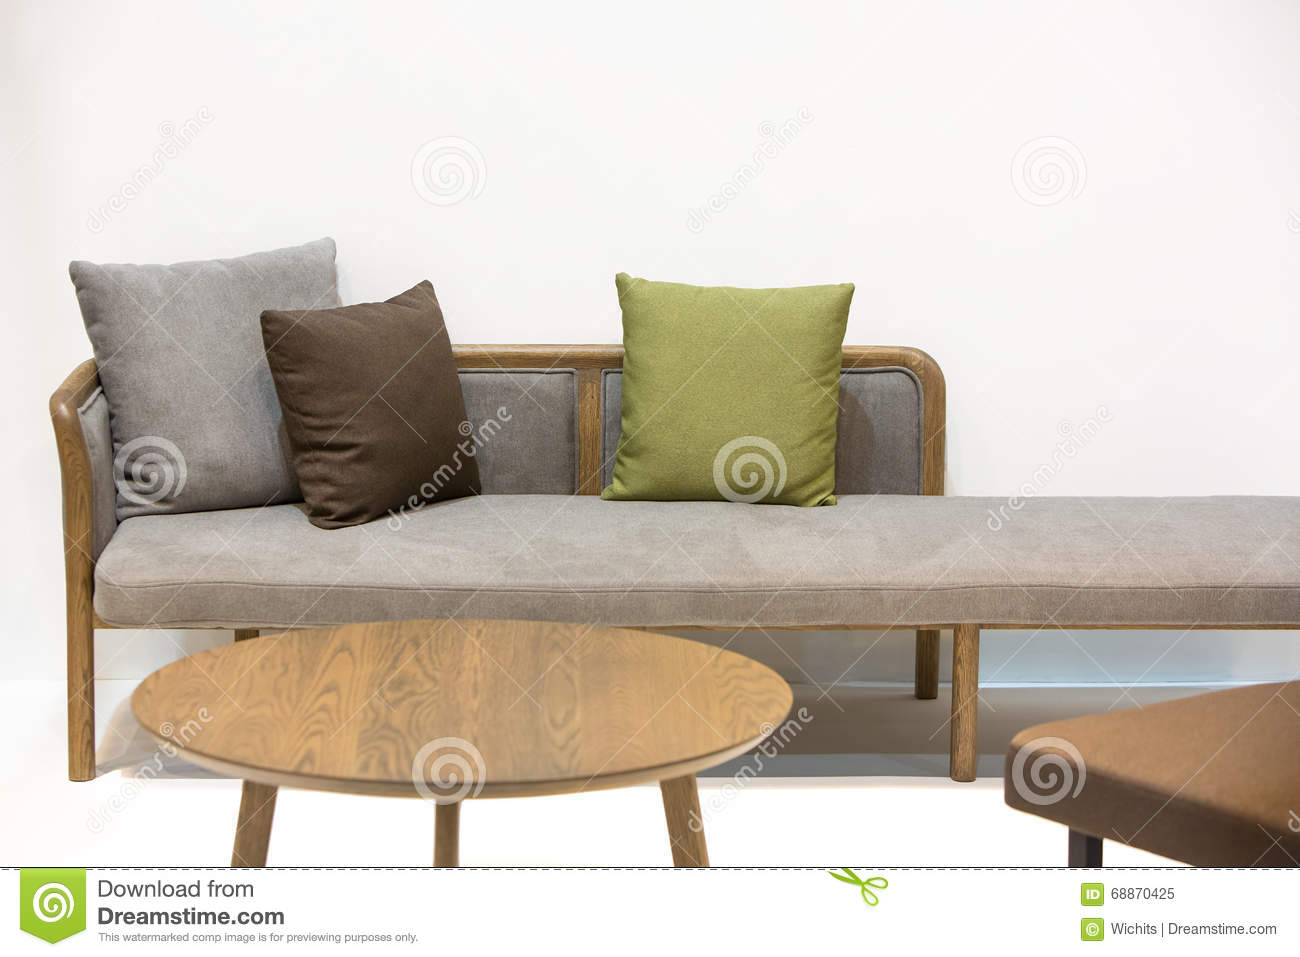 Japanese style sofa bed stock image Image of countryside  : japanese style sofa bed isolate round wooden coffee table white background 68870425 from www.dreamstime.com size 1300 x 957 jpeg 92kB